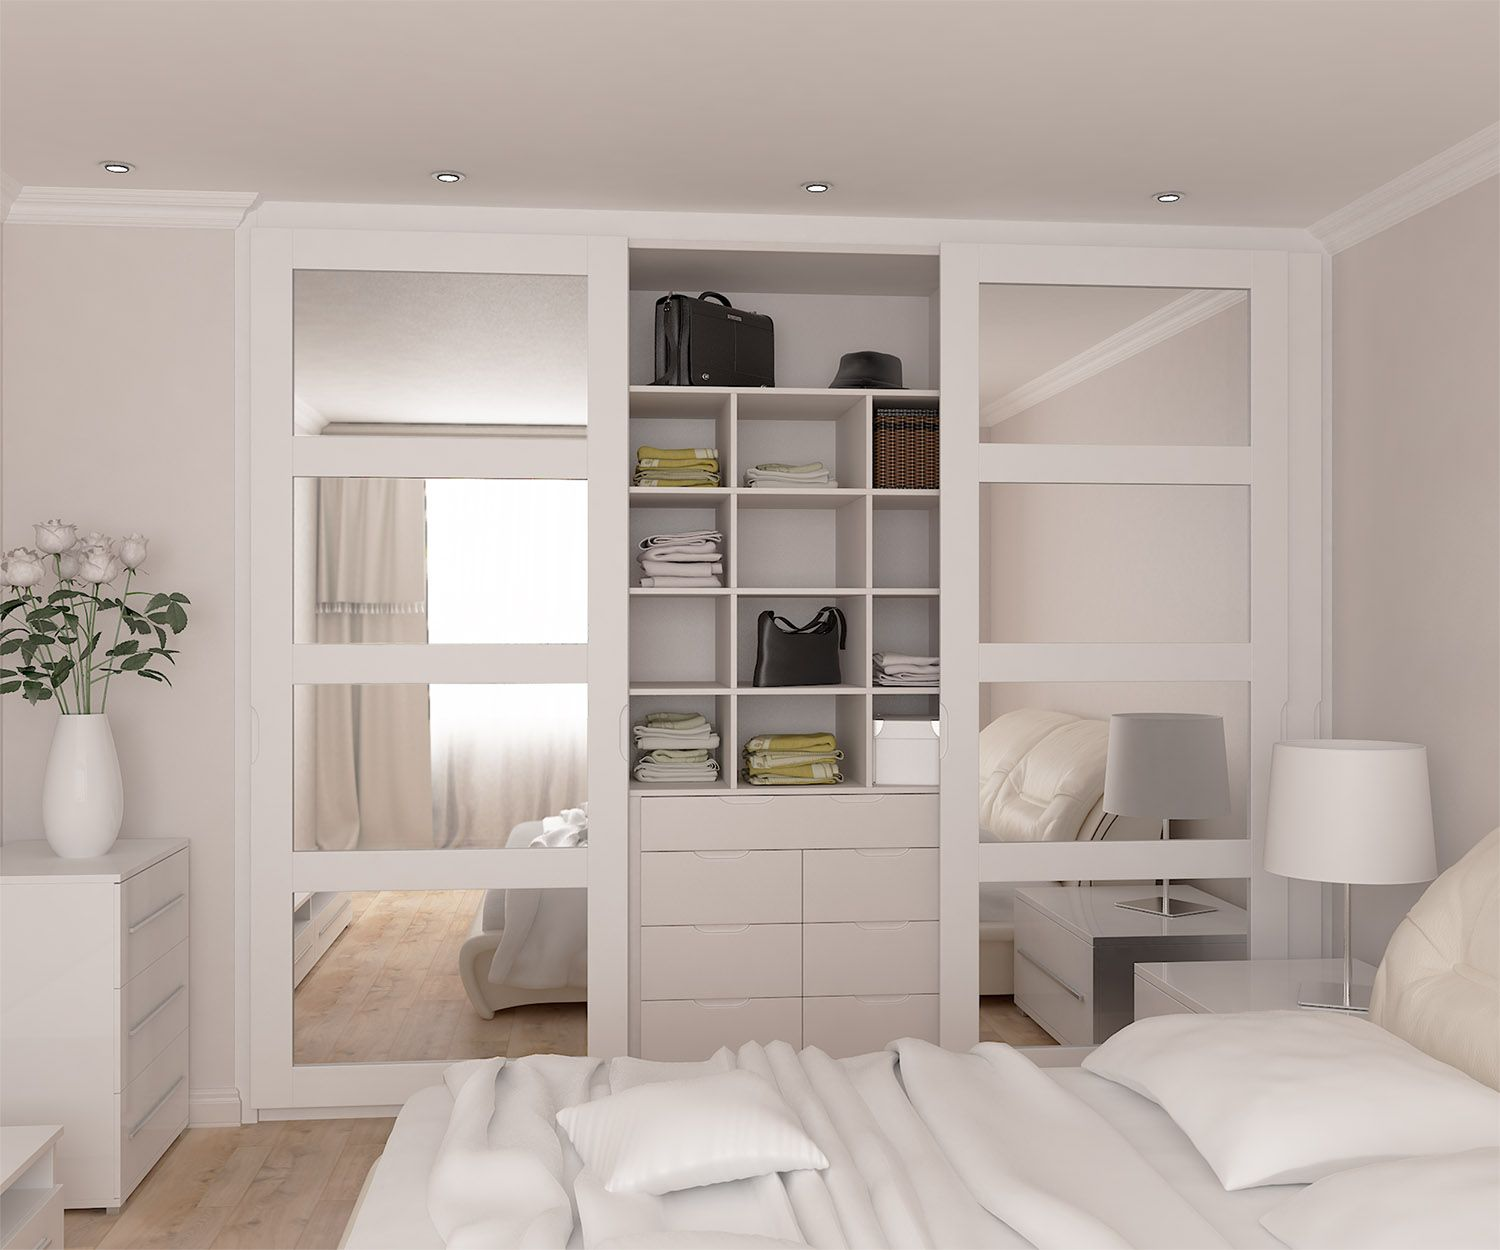 Create A New Look For Your Room With These Closet Door Ideas Apartment Bedroom Decor Bedroom Closet Doors Closet Bedroom